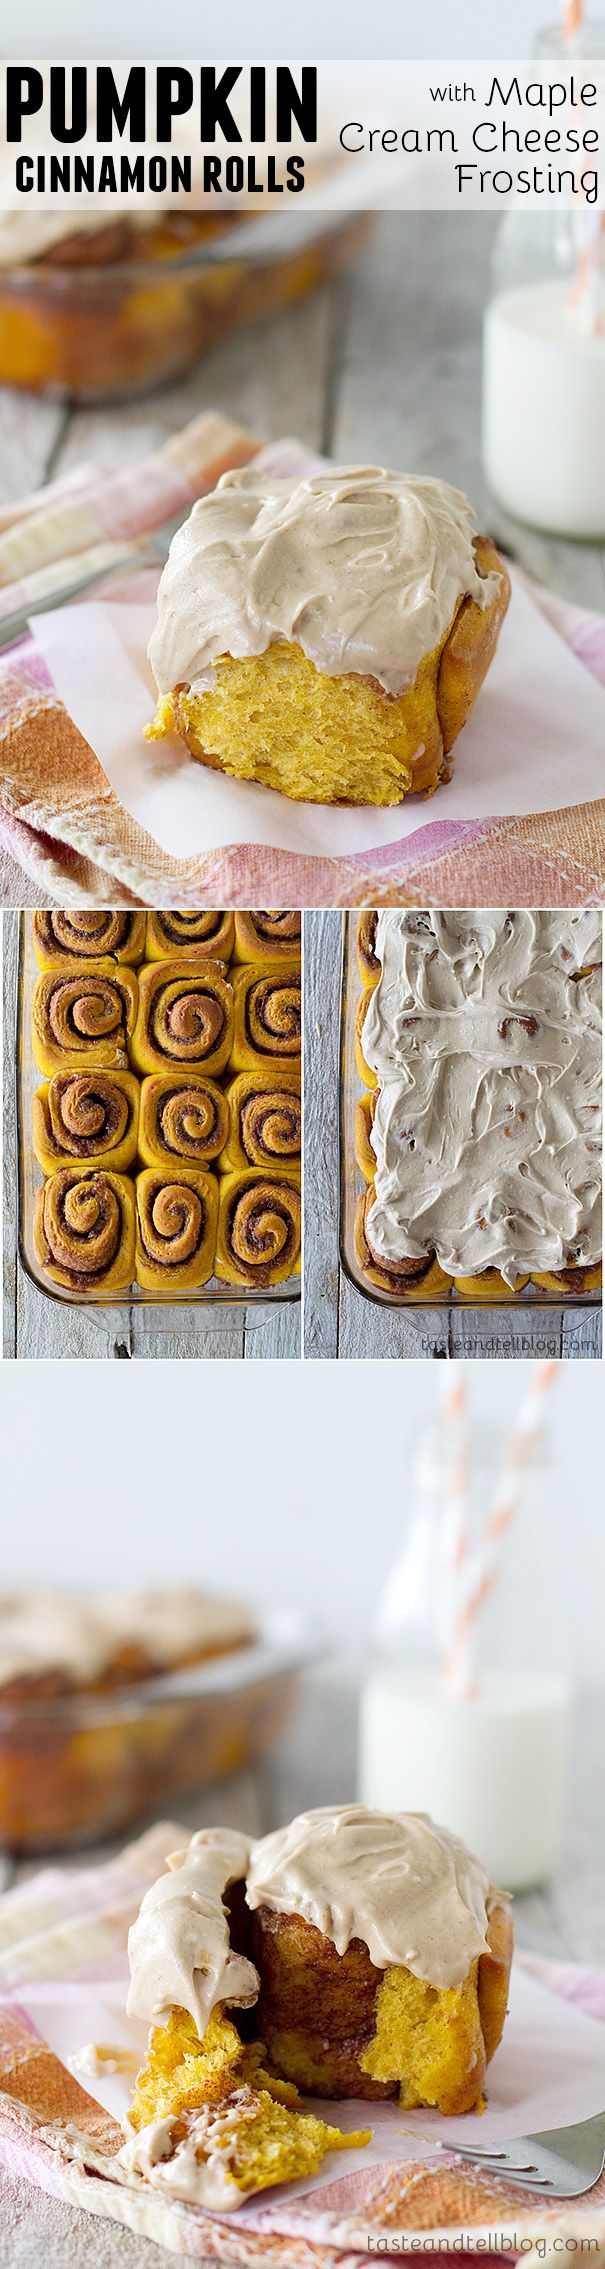 Pumpkin Cinnamon Rolls with Maple Cream Cheese Frosting - The flavors ...